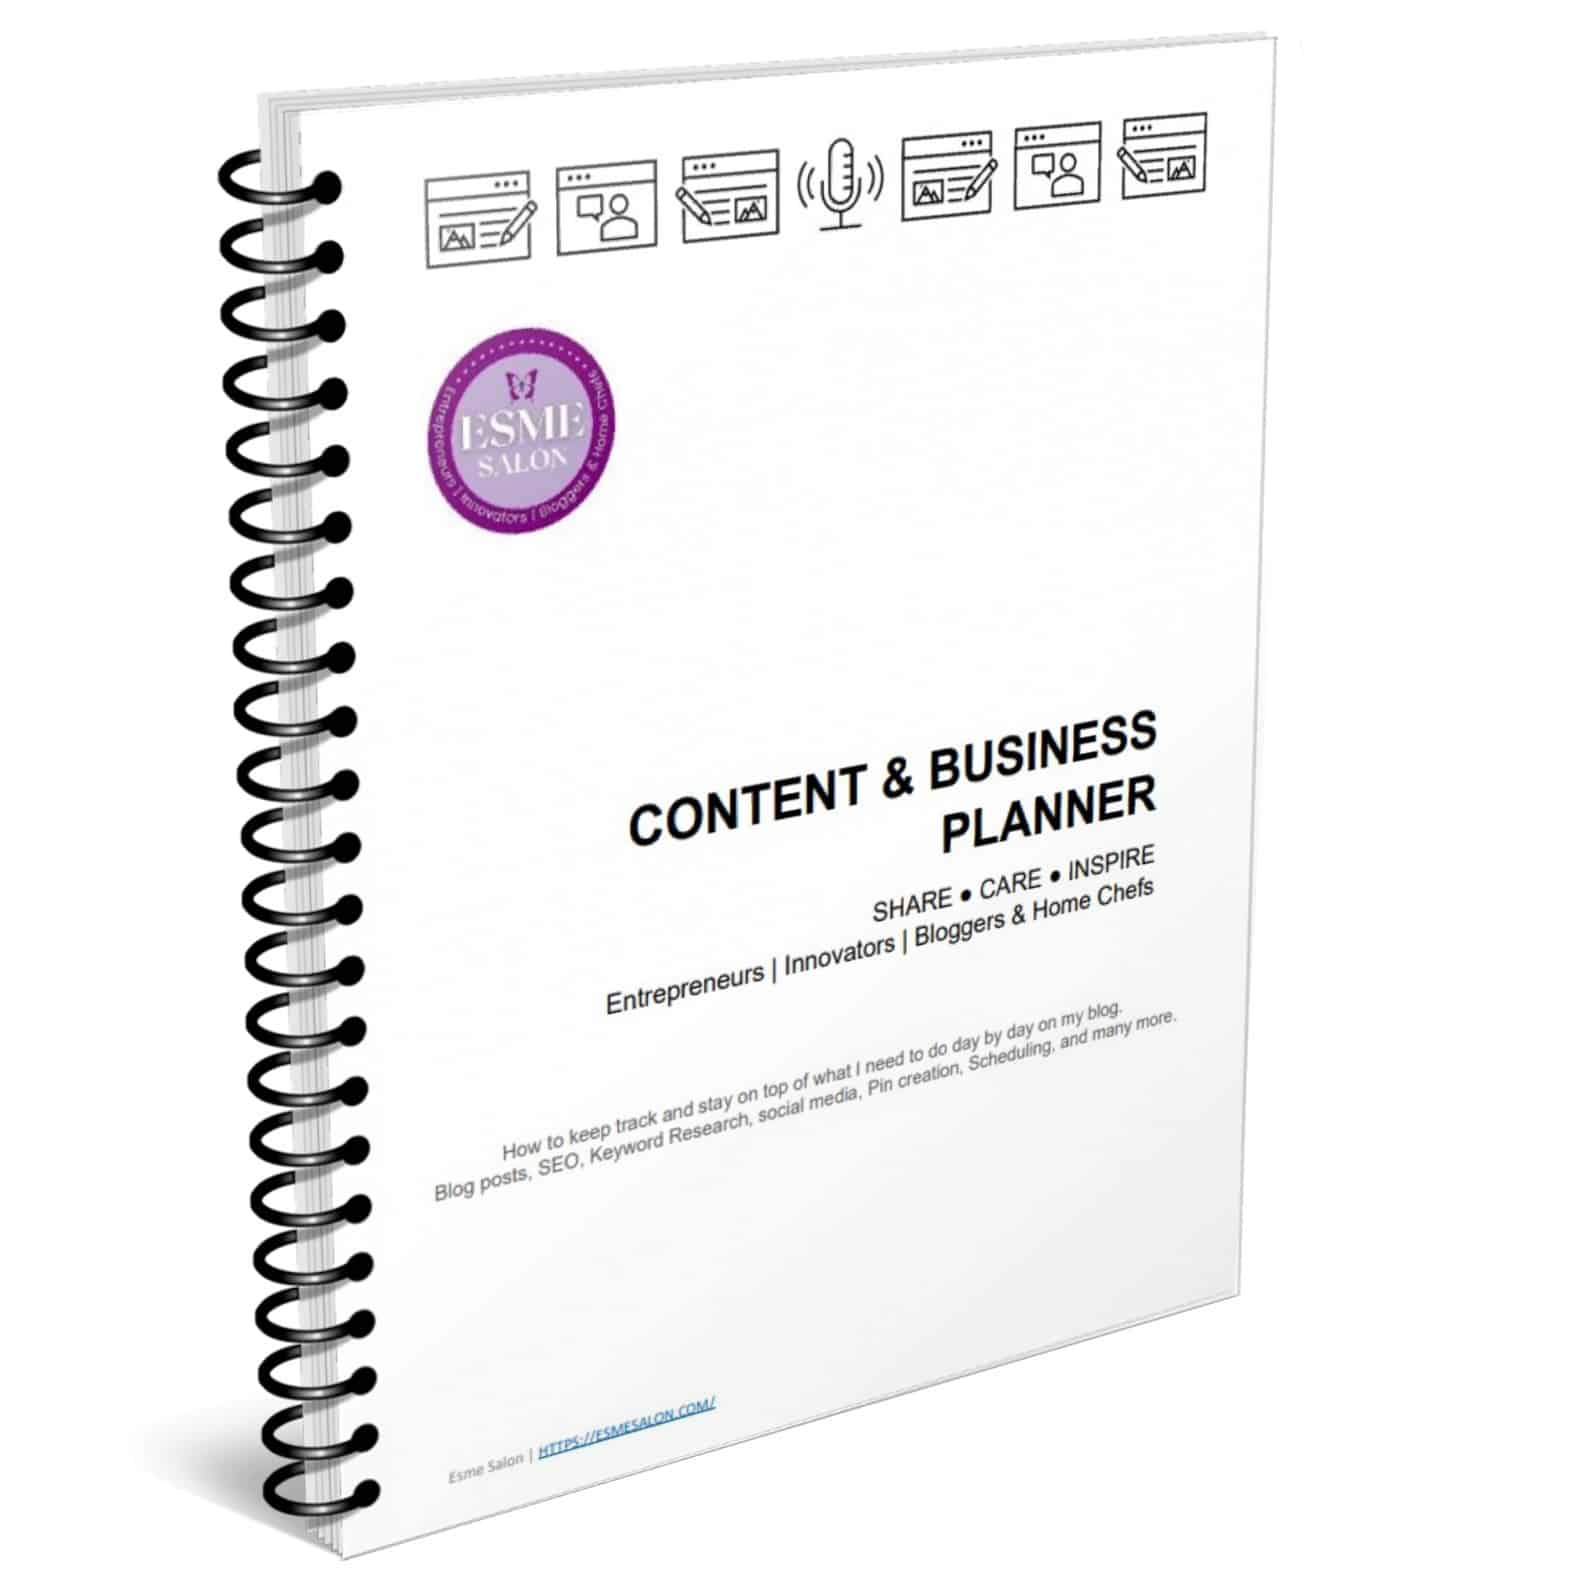 Content & Business Planner